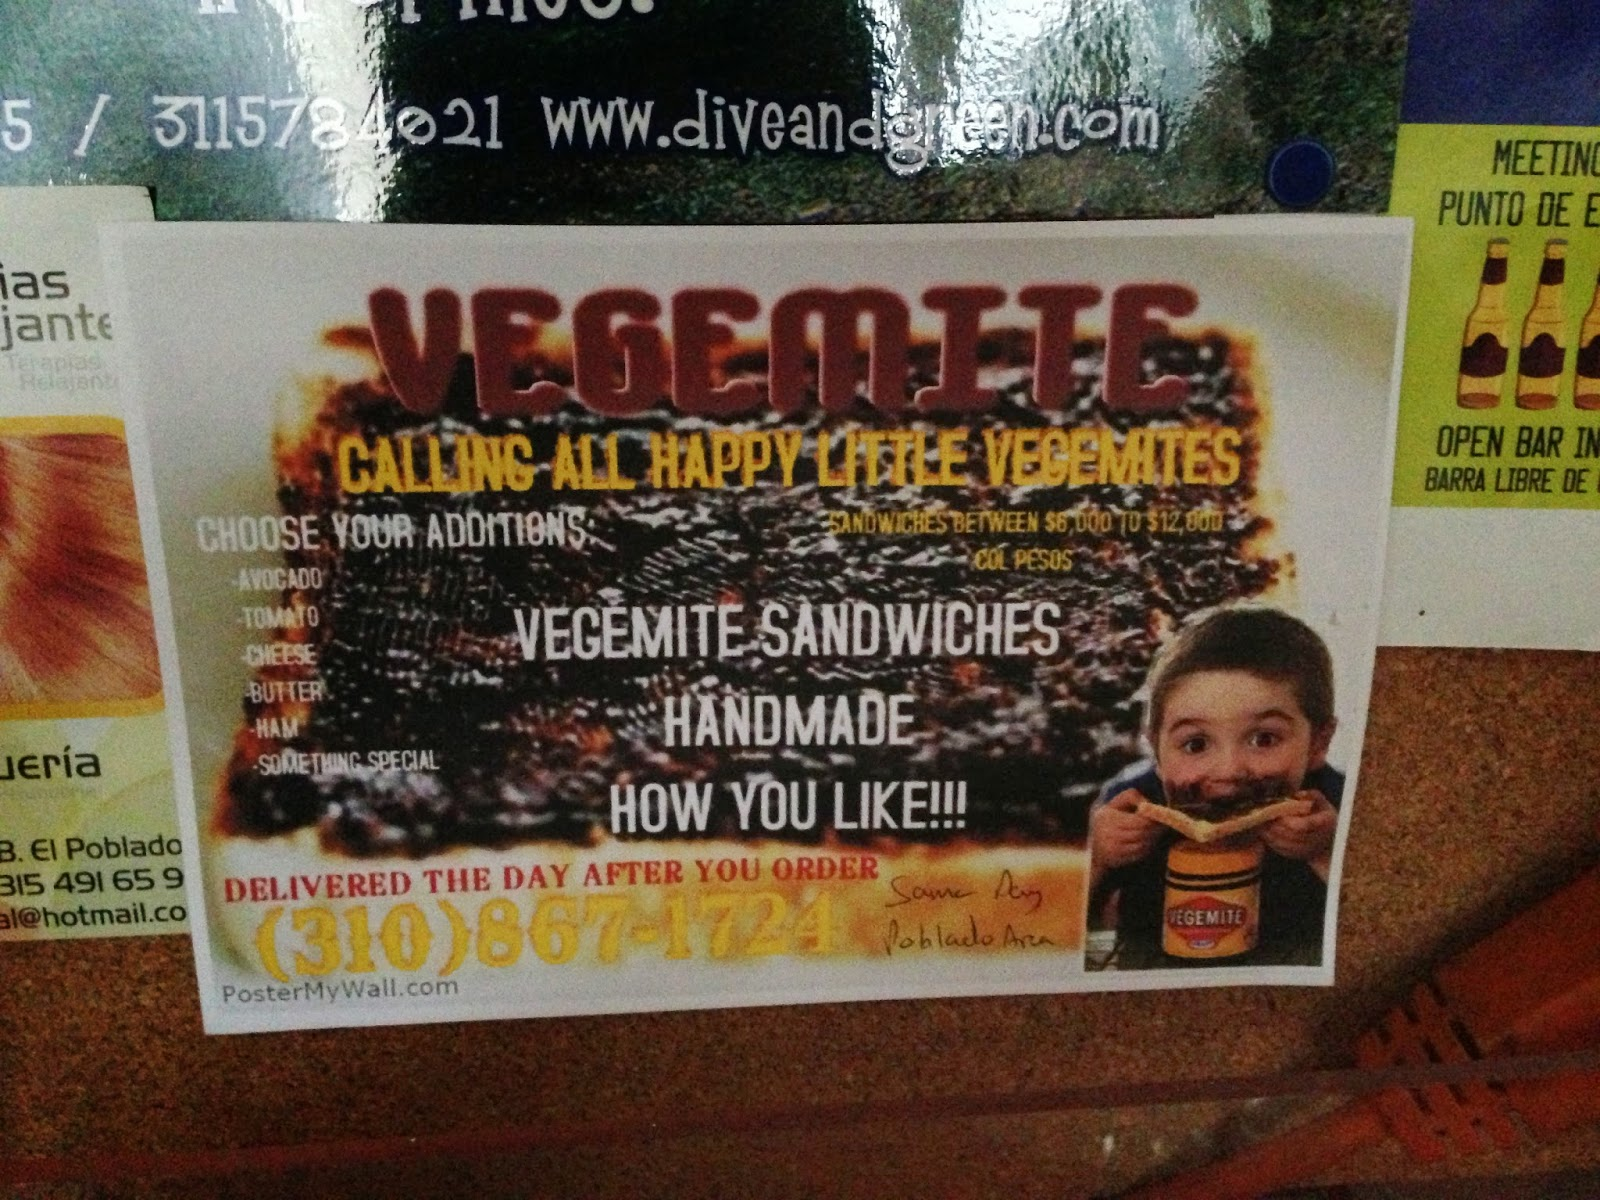 For all you Aussies out there, you can get Vegemite sandwiches delivered to this hostel. Isn't that reason enough to stay?